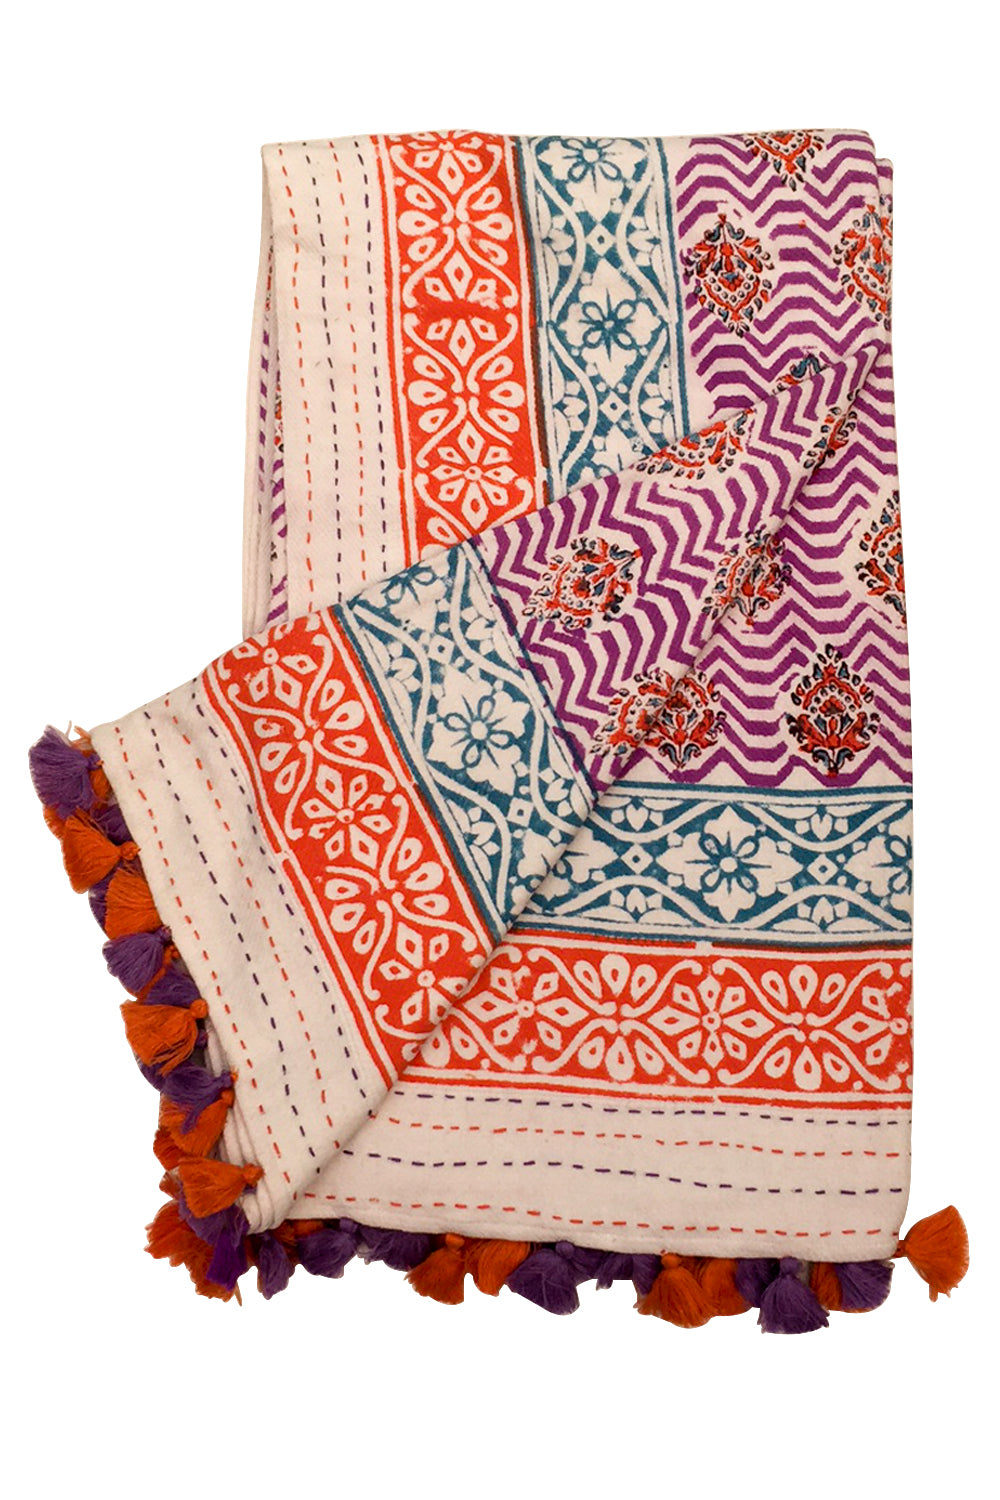 Travel Beach Throw - Zahir Lifestyle